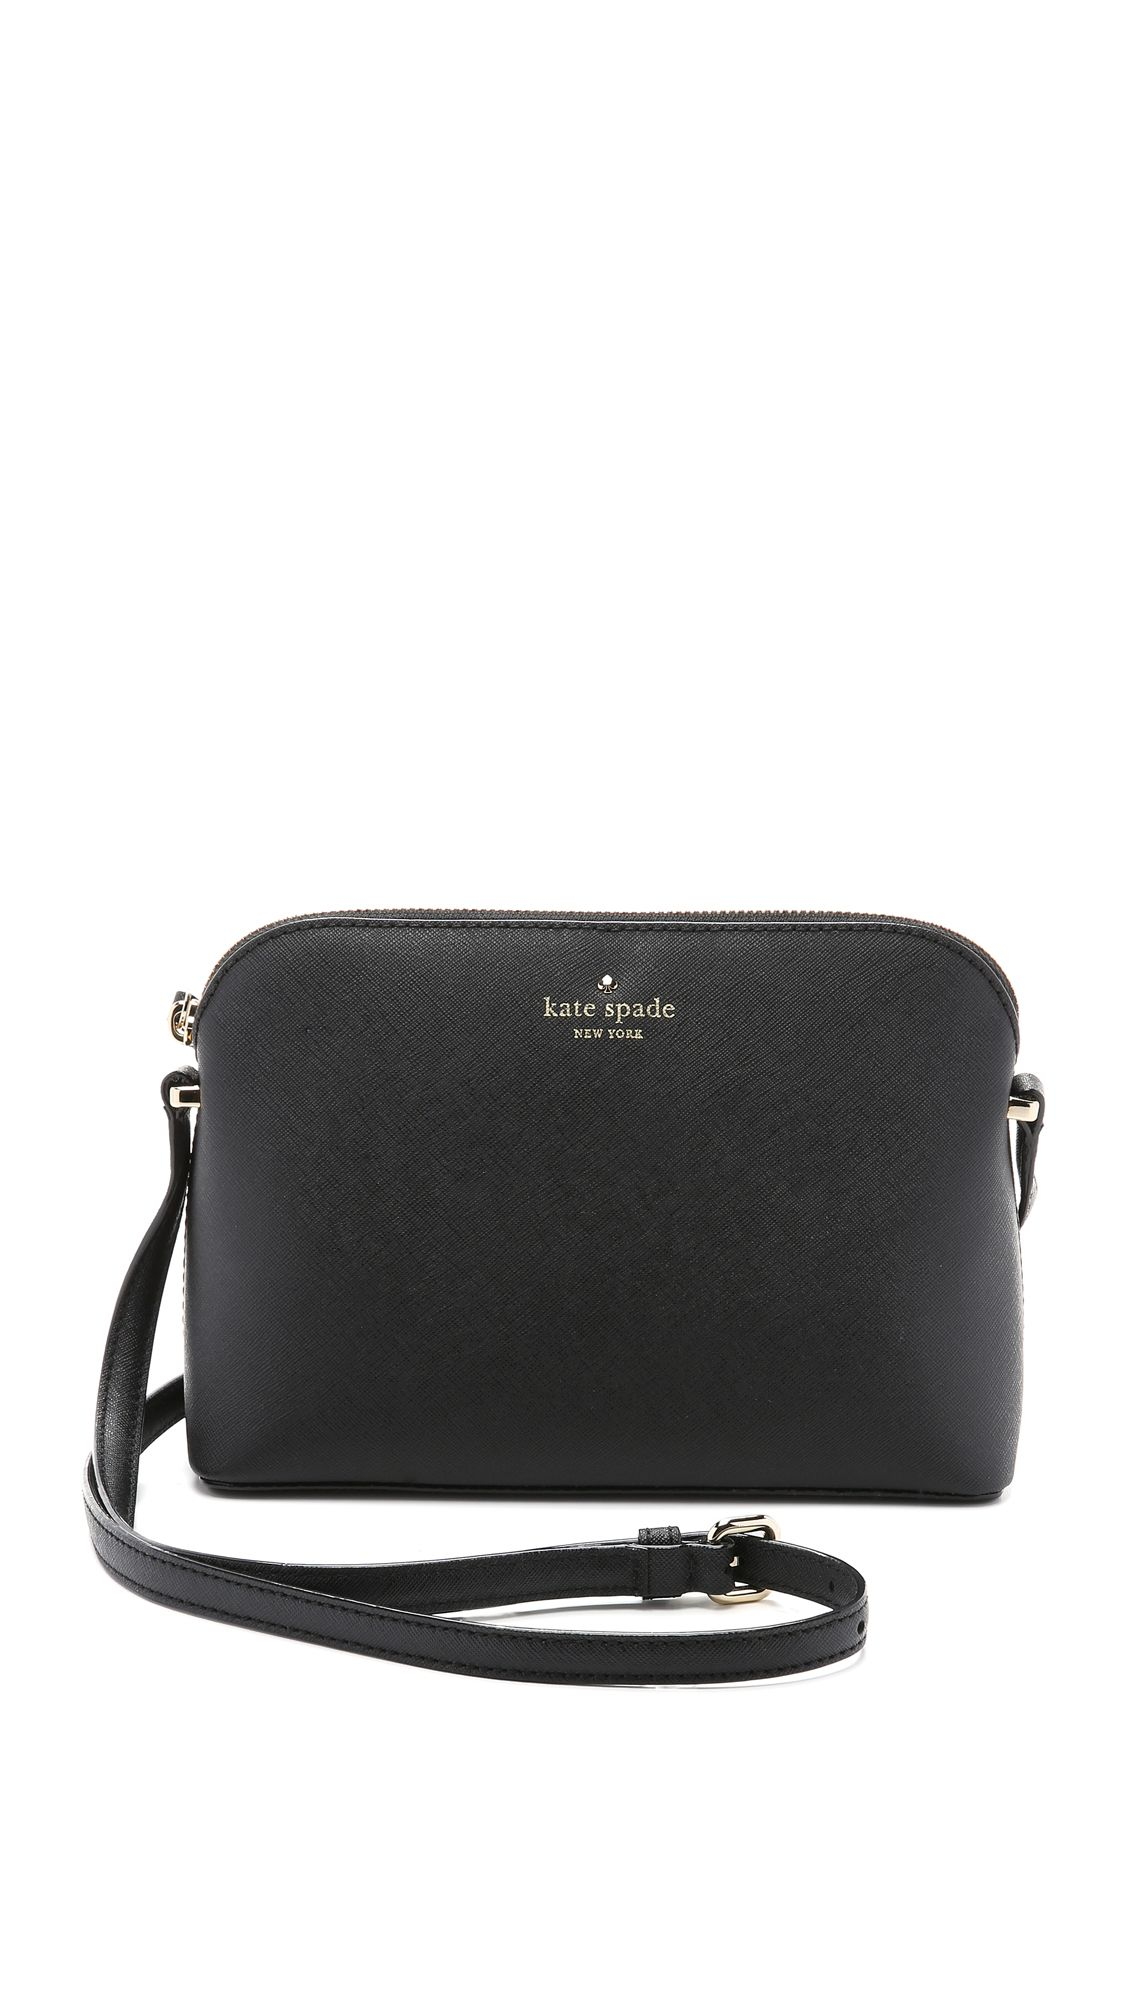 8c02226b3 Kate Spade New York Mandy Dome Cross Body Bag - Black | SHOPBOP.COM saved  by #ShoppingIS